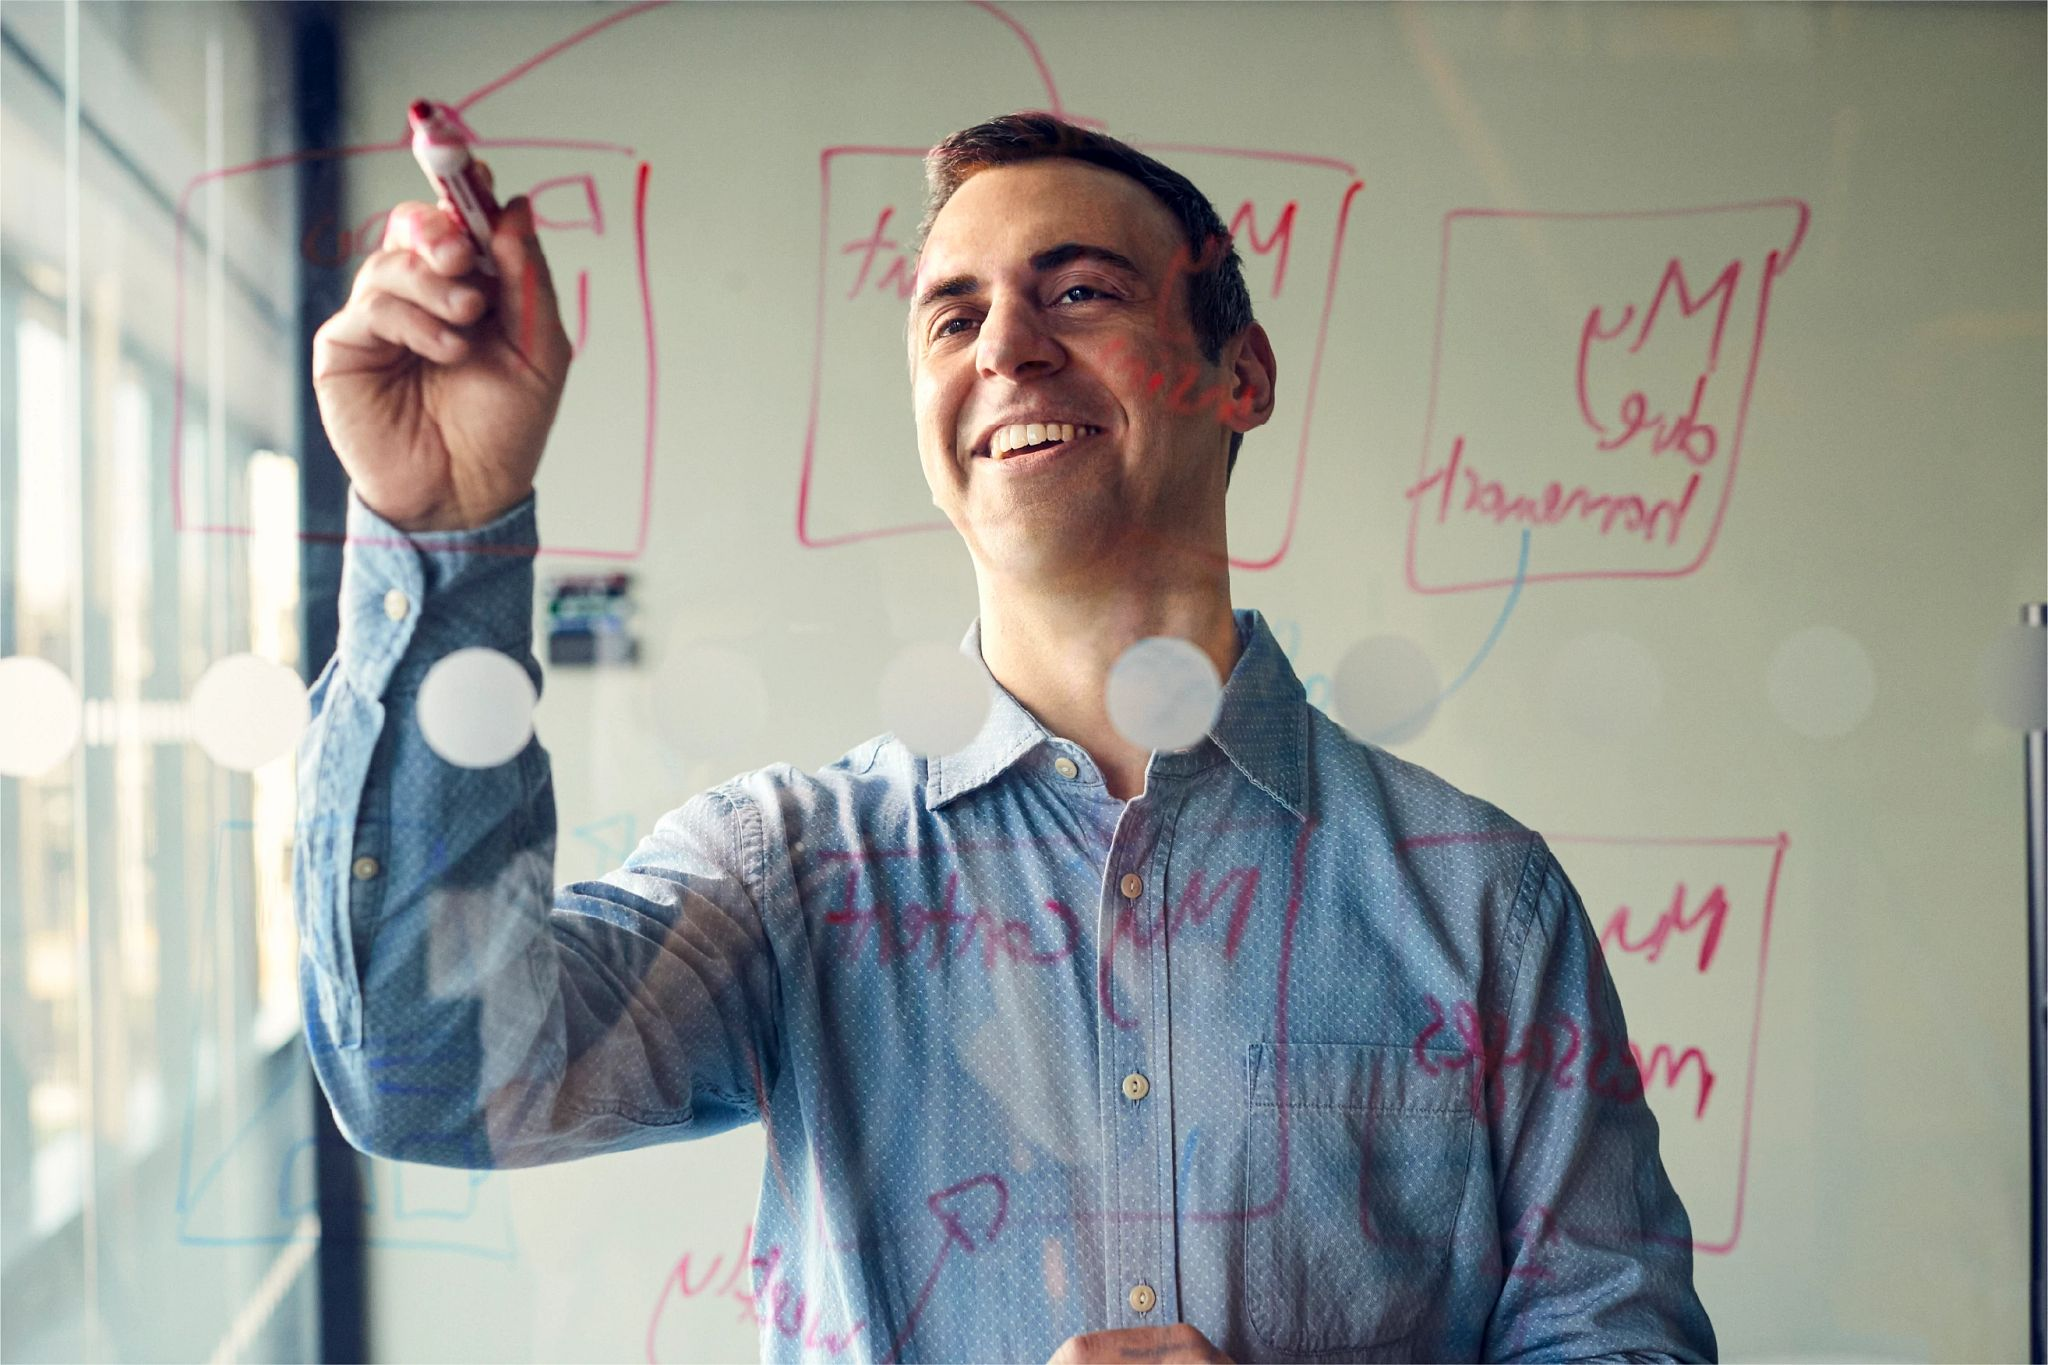 Matt N., Vice President, Technical Product Management, explores innovative approaches to education technology while writing on a whiteboard.